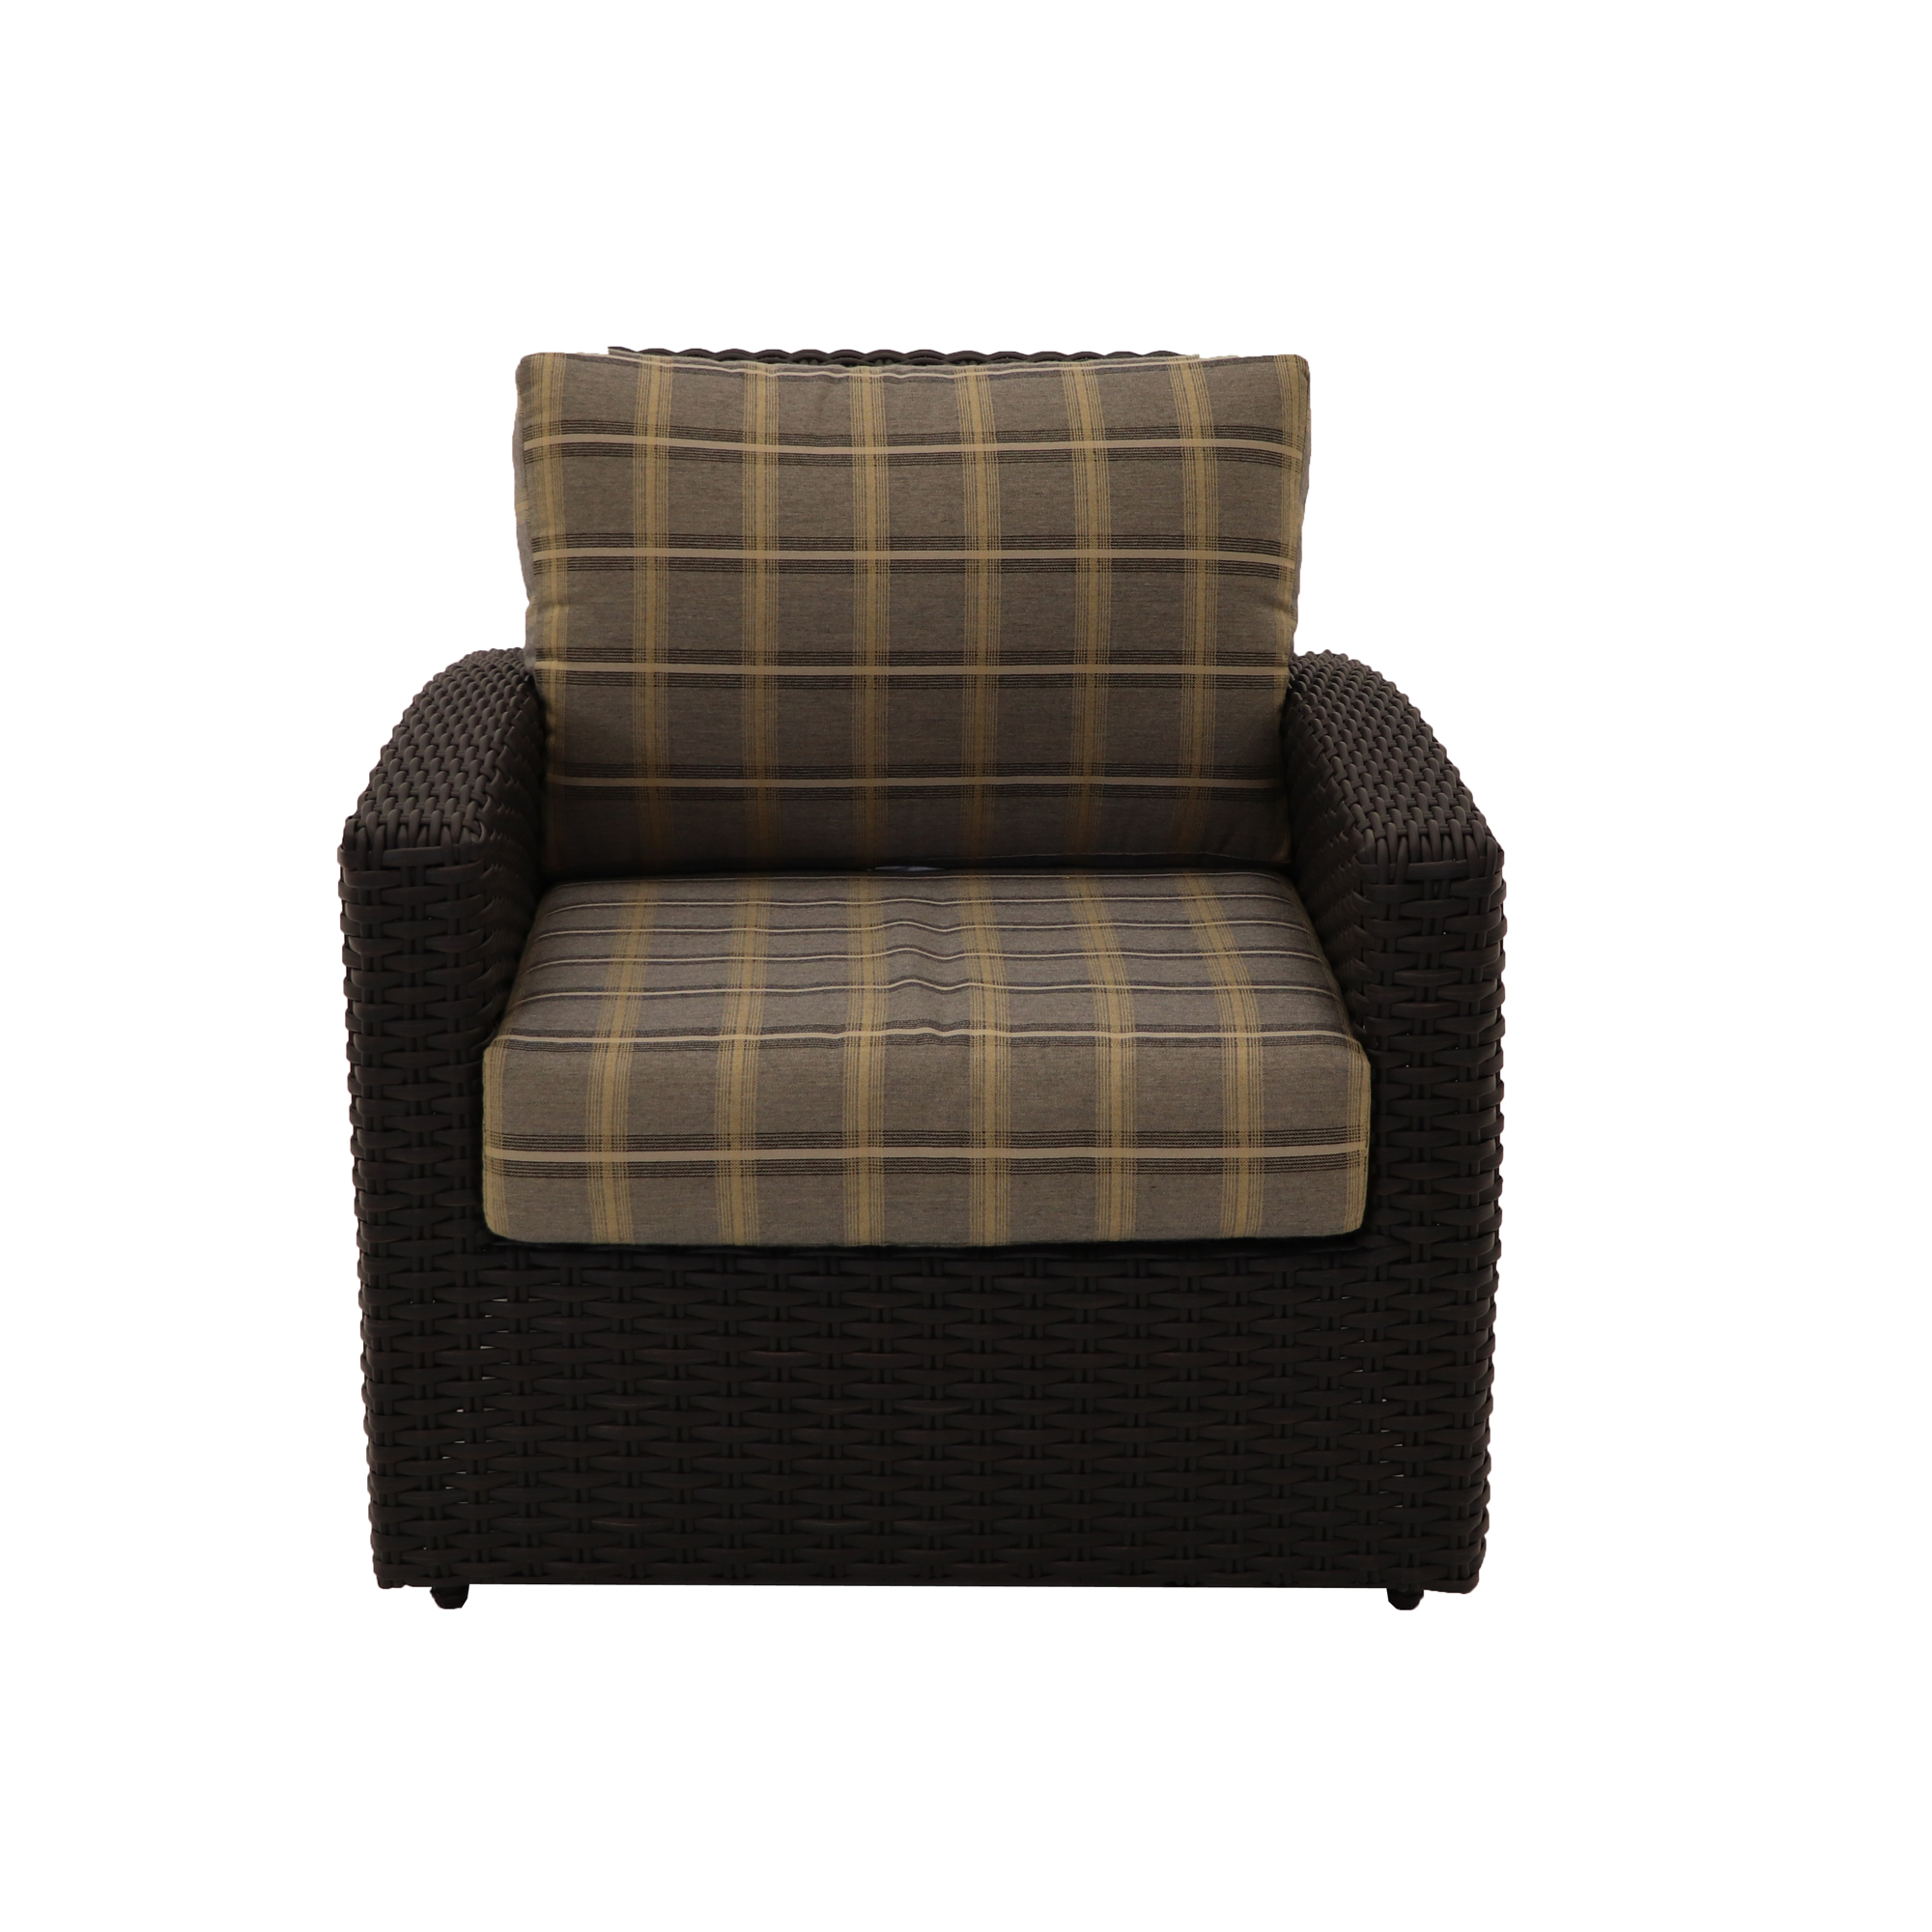 Biscayne Wicker Club Chair Patio Furniture At Sun Country